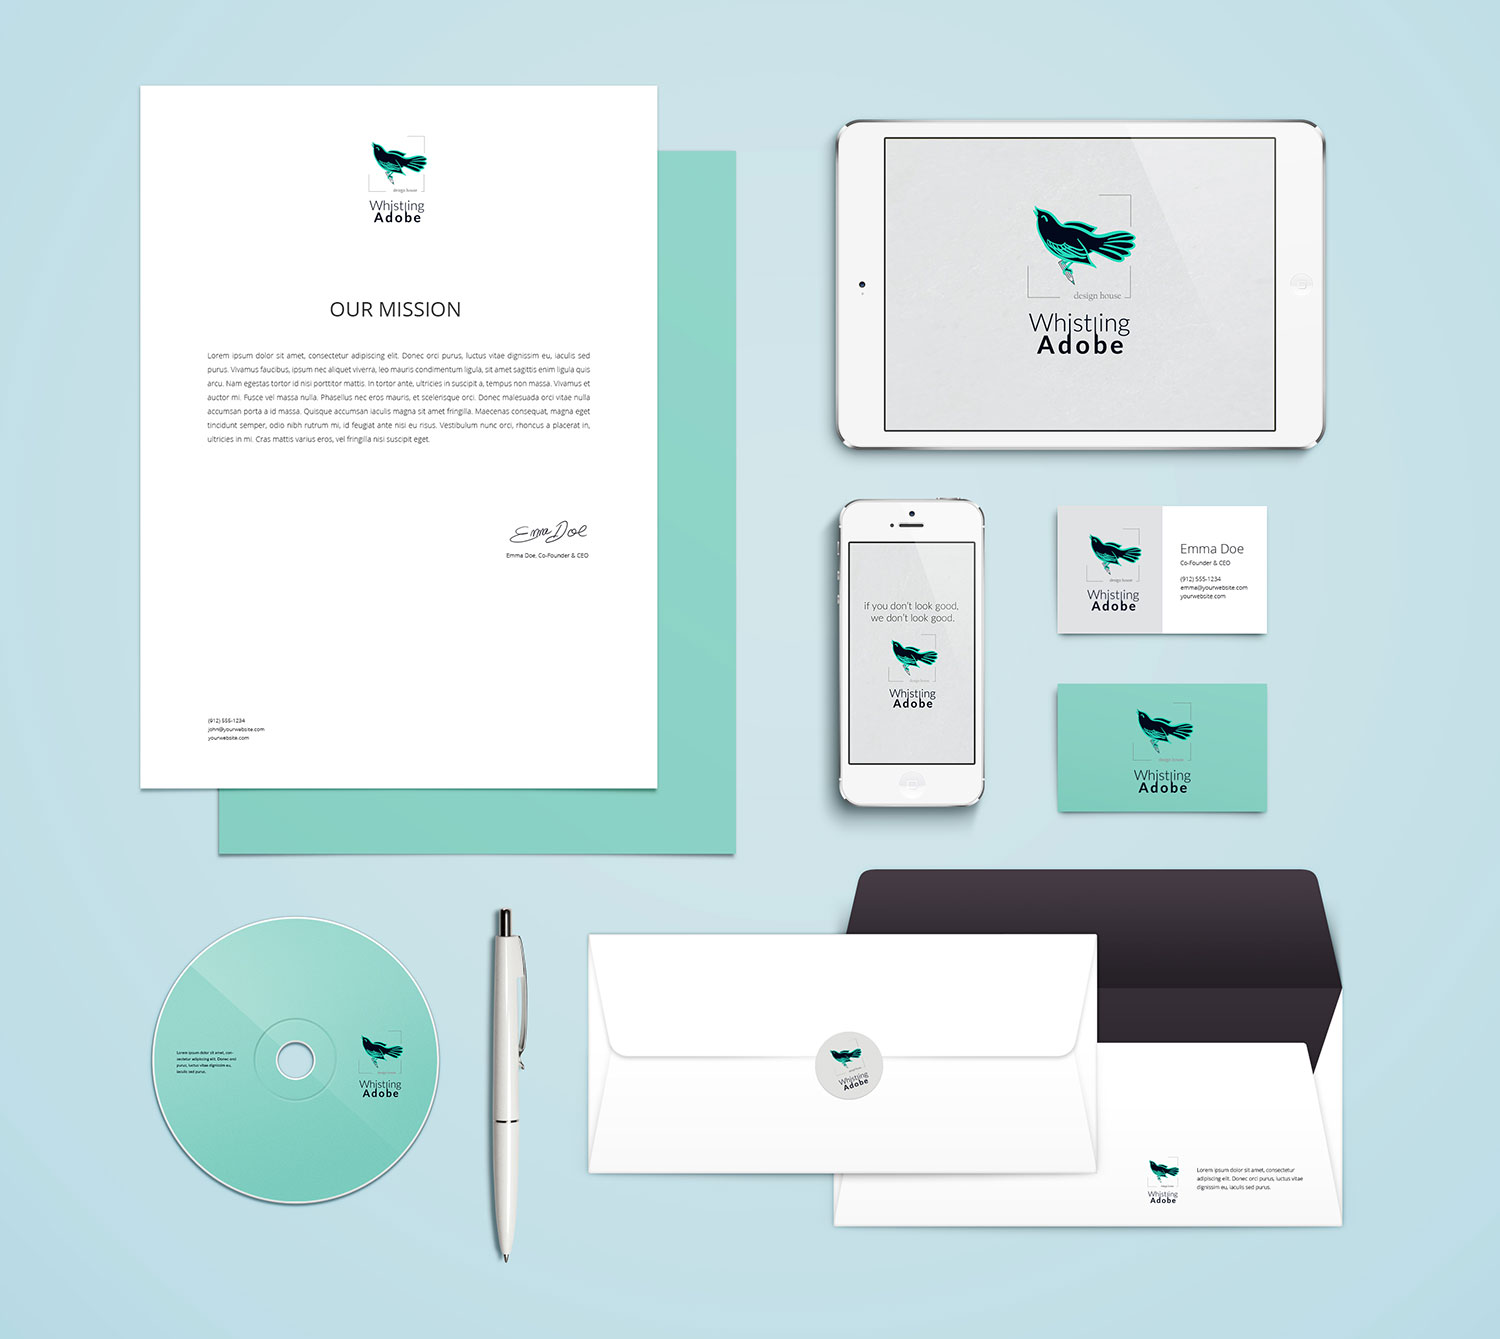 WADH-Branding-Identity-Mock-Up-Vol41.jpg